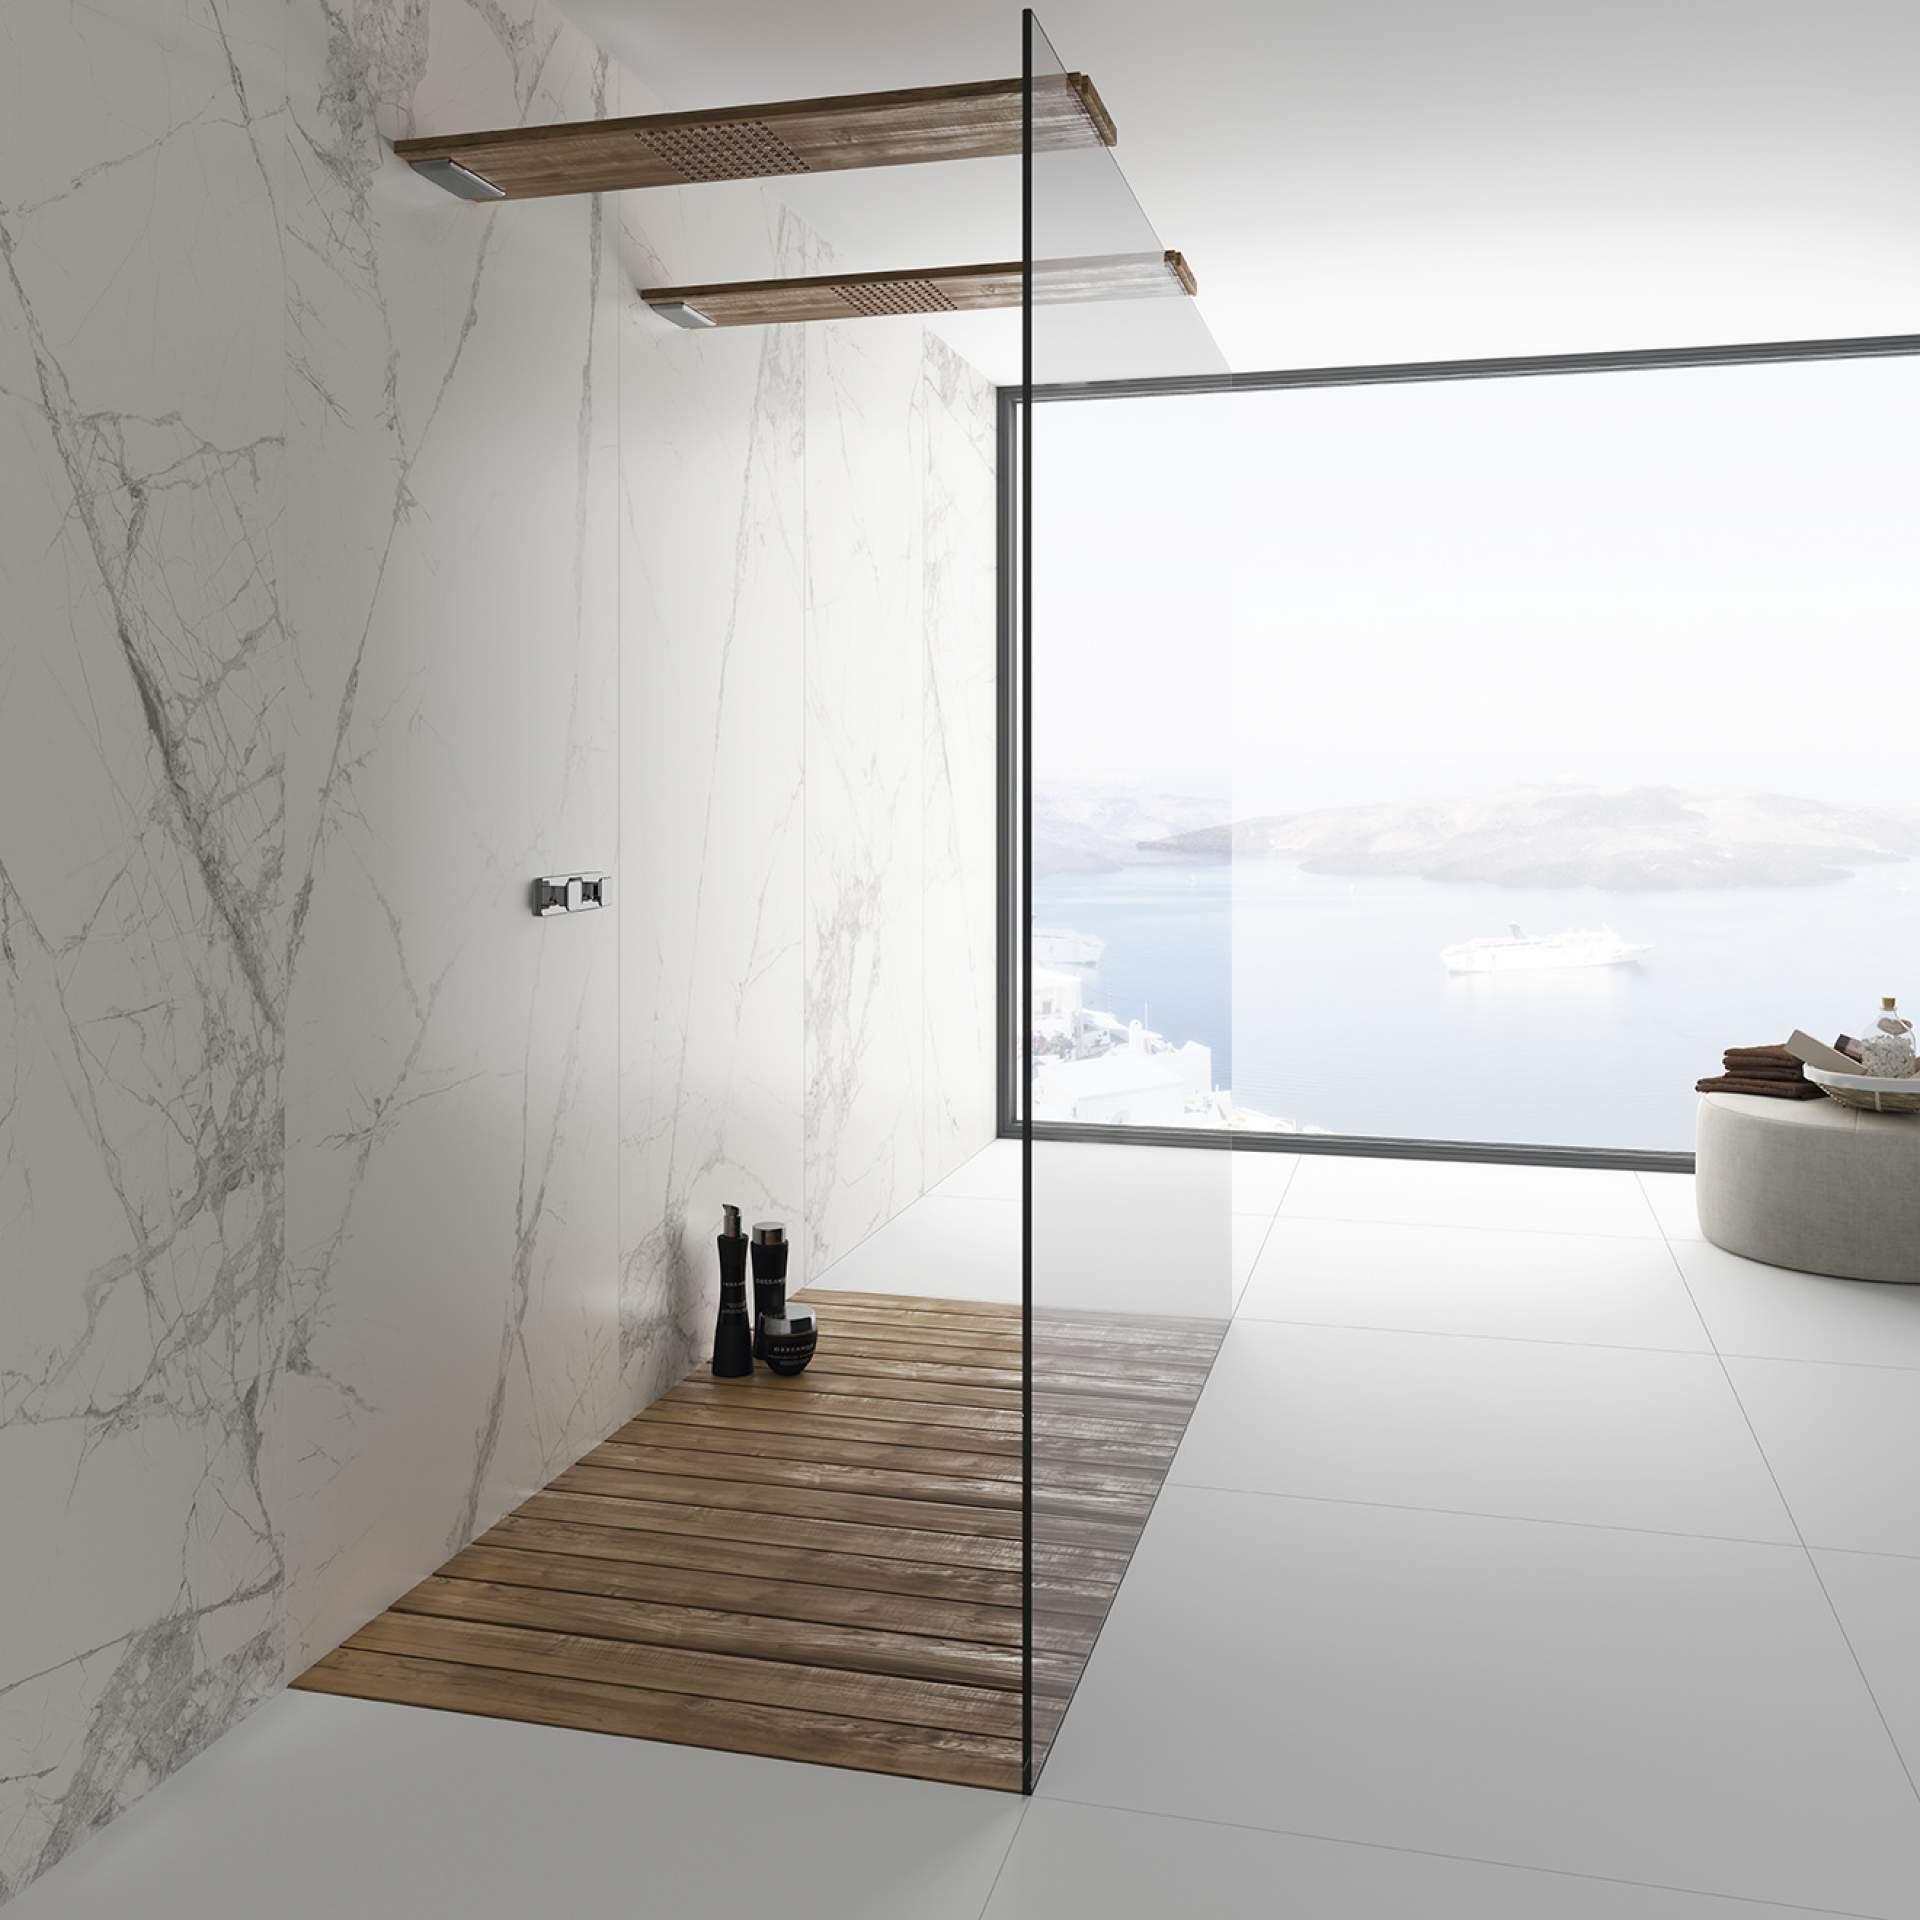 Blank Bathroom setting using White Natural Tile